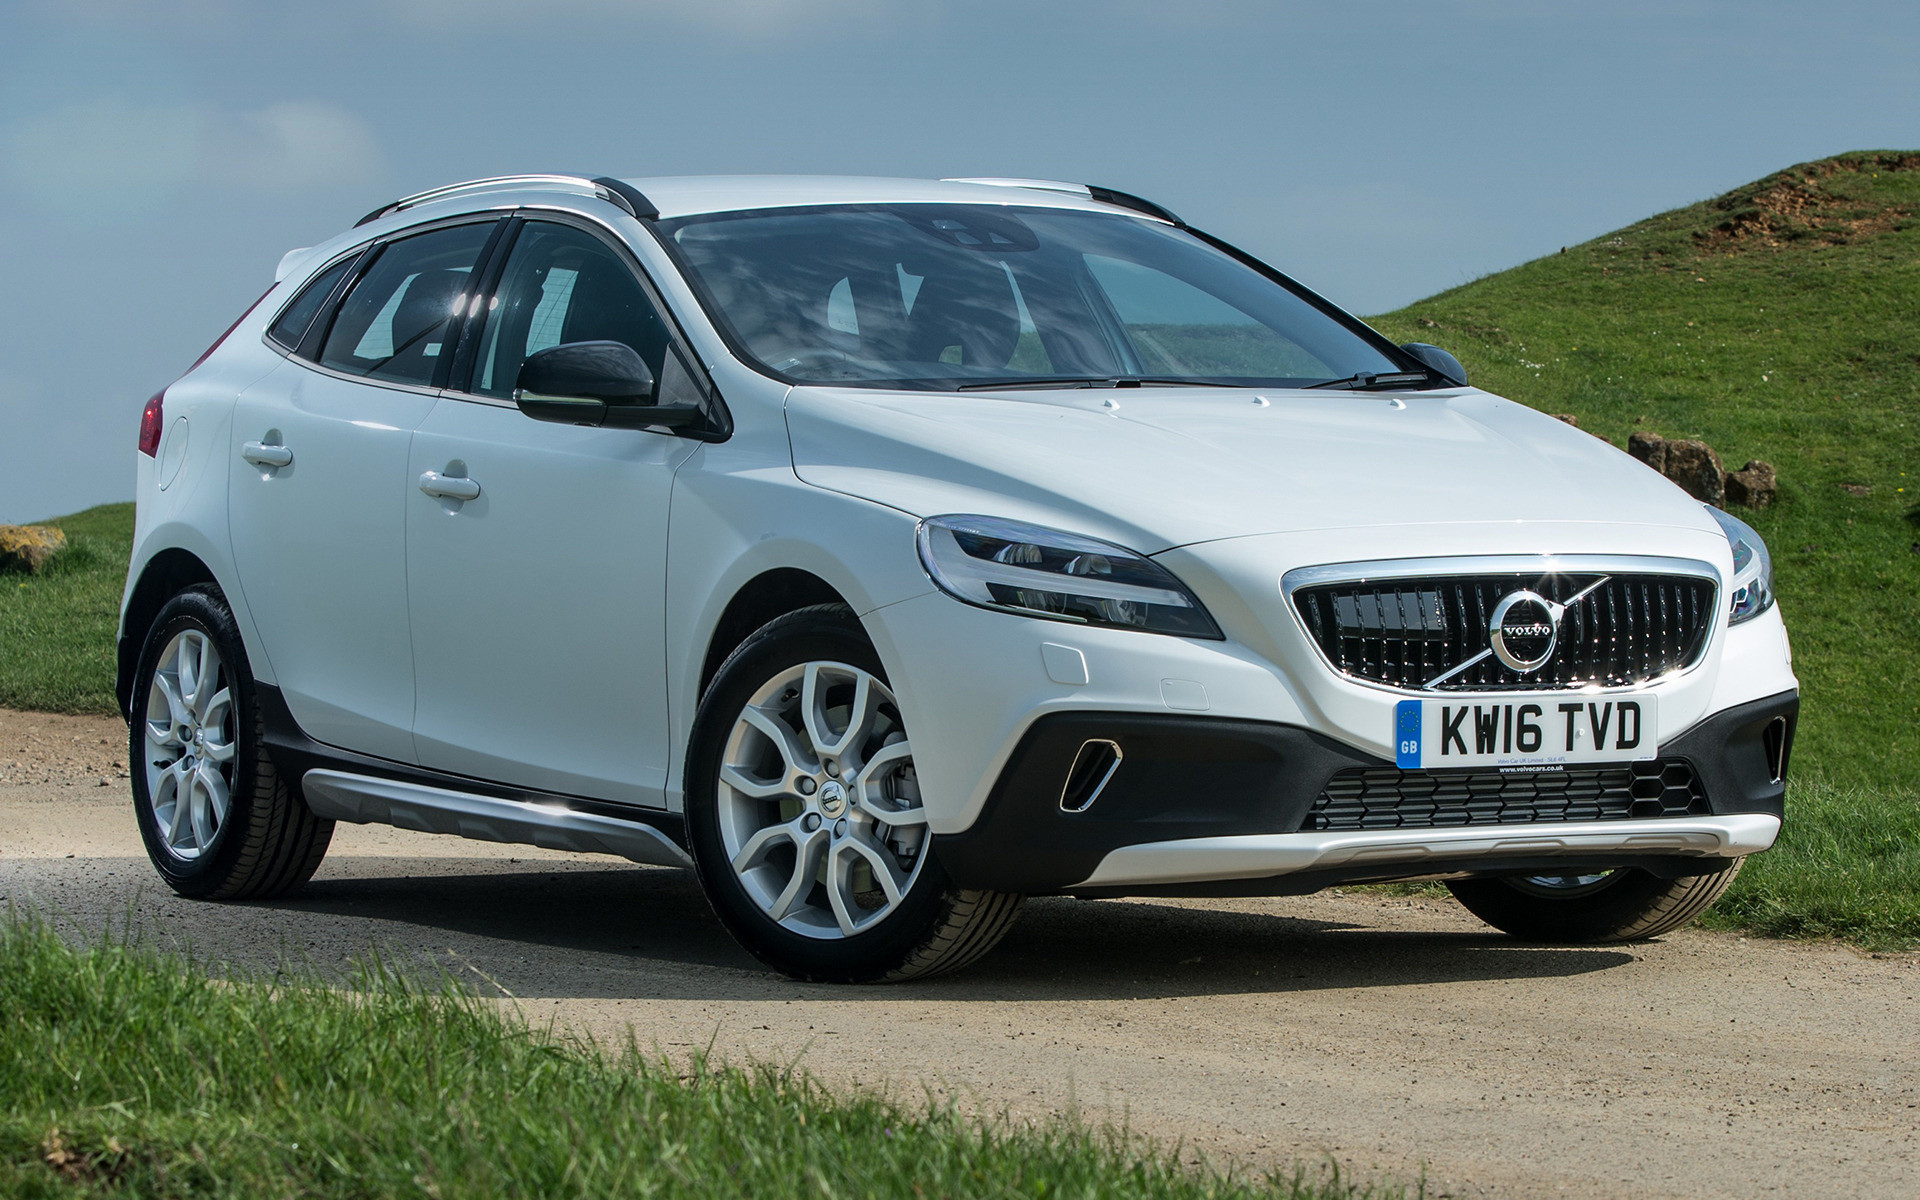 volvo v40 cross country 2016 uk wallpapers and hd images. Black Bedroom Furniture Sets. Home Design Ideas